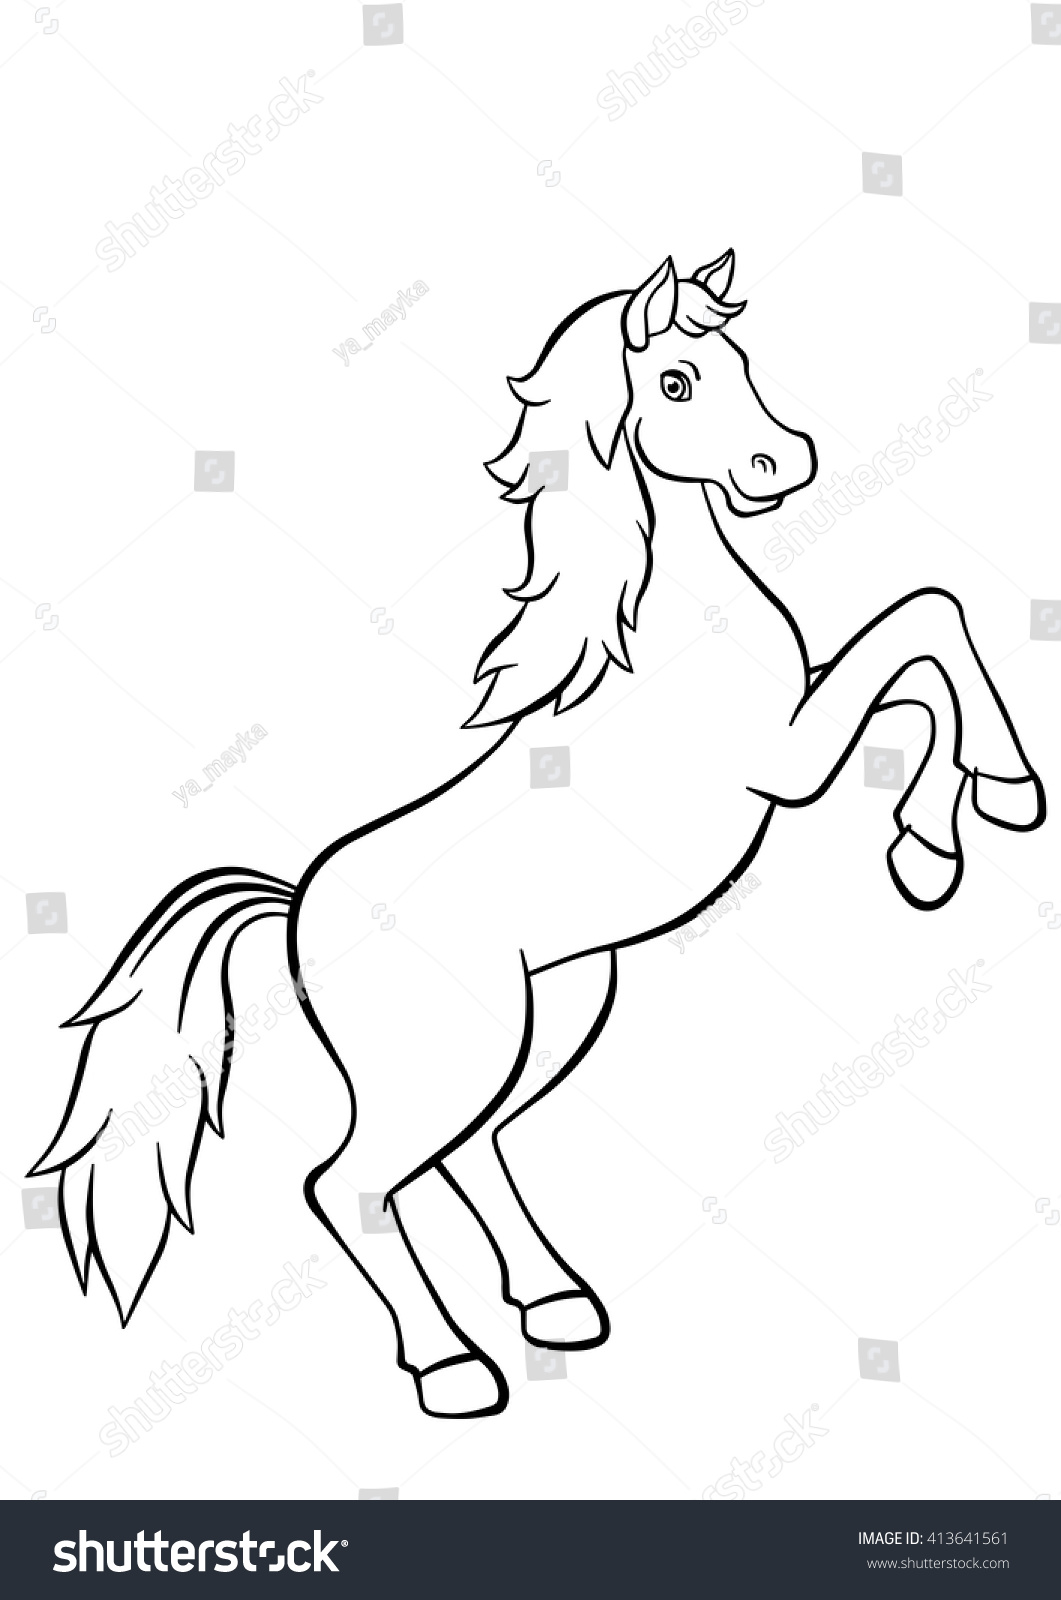 coloring pages animals cute horse jumps stock vector 413641561